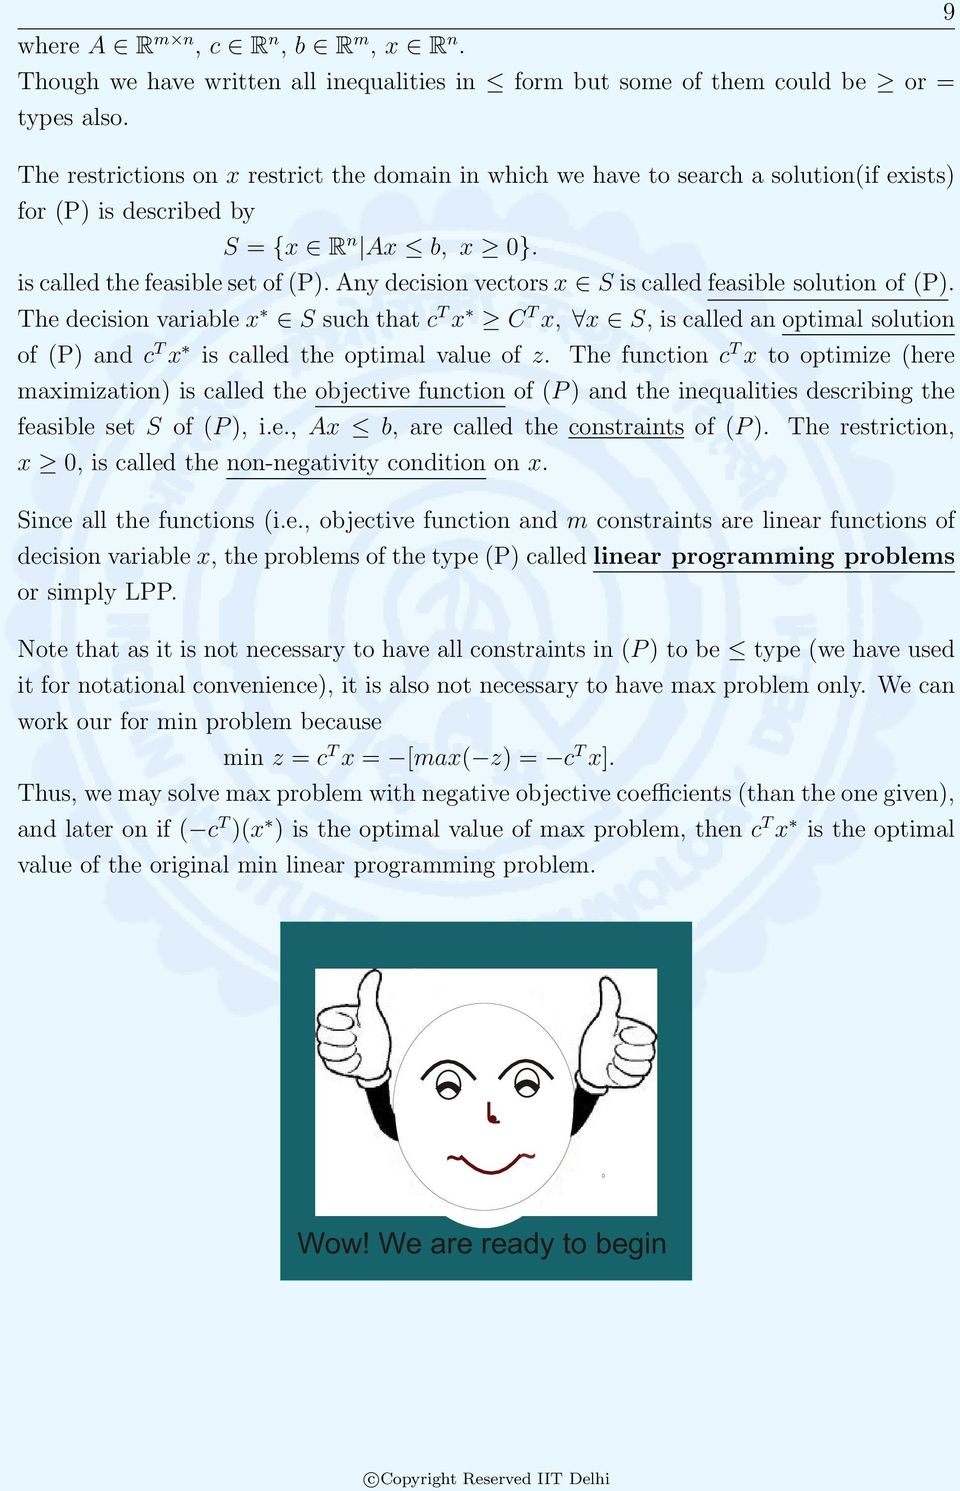 Any decision vectors x S is called feasible solution of (P). The decision variable x S such that c T x C T x, x S, is called an optimal solution of (P) and c T x is called the optimal value of z.